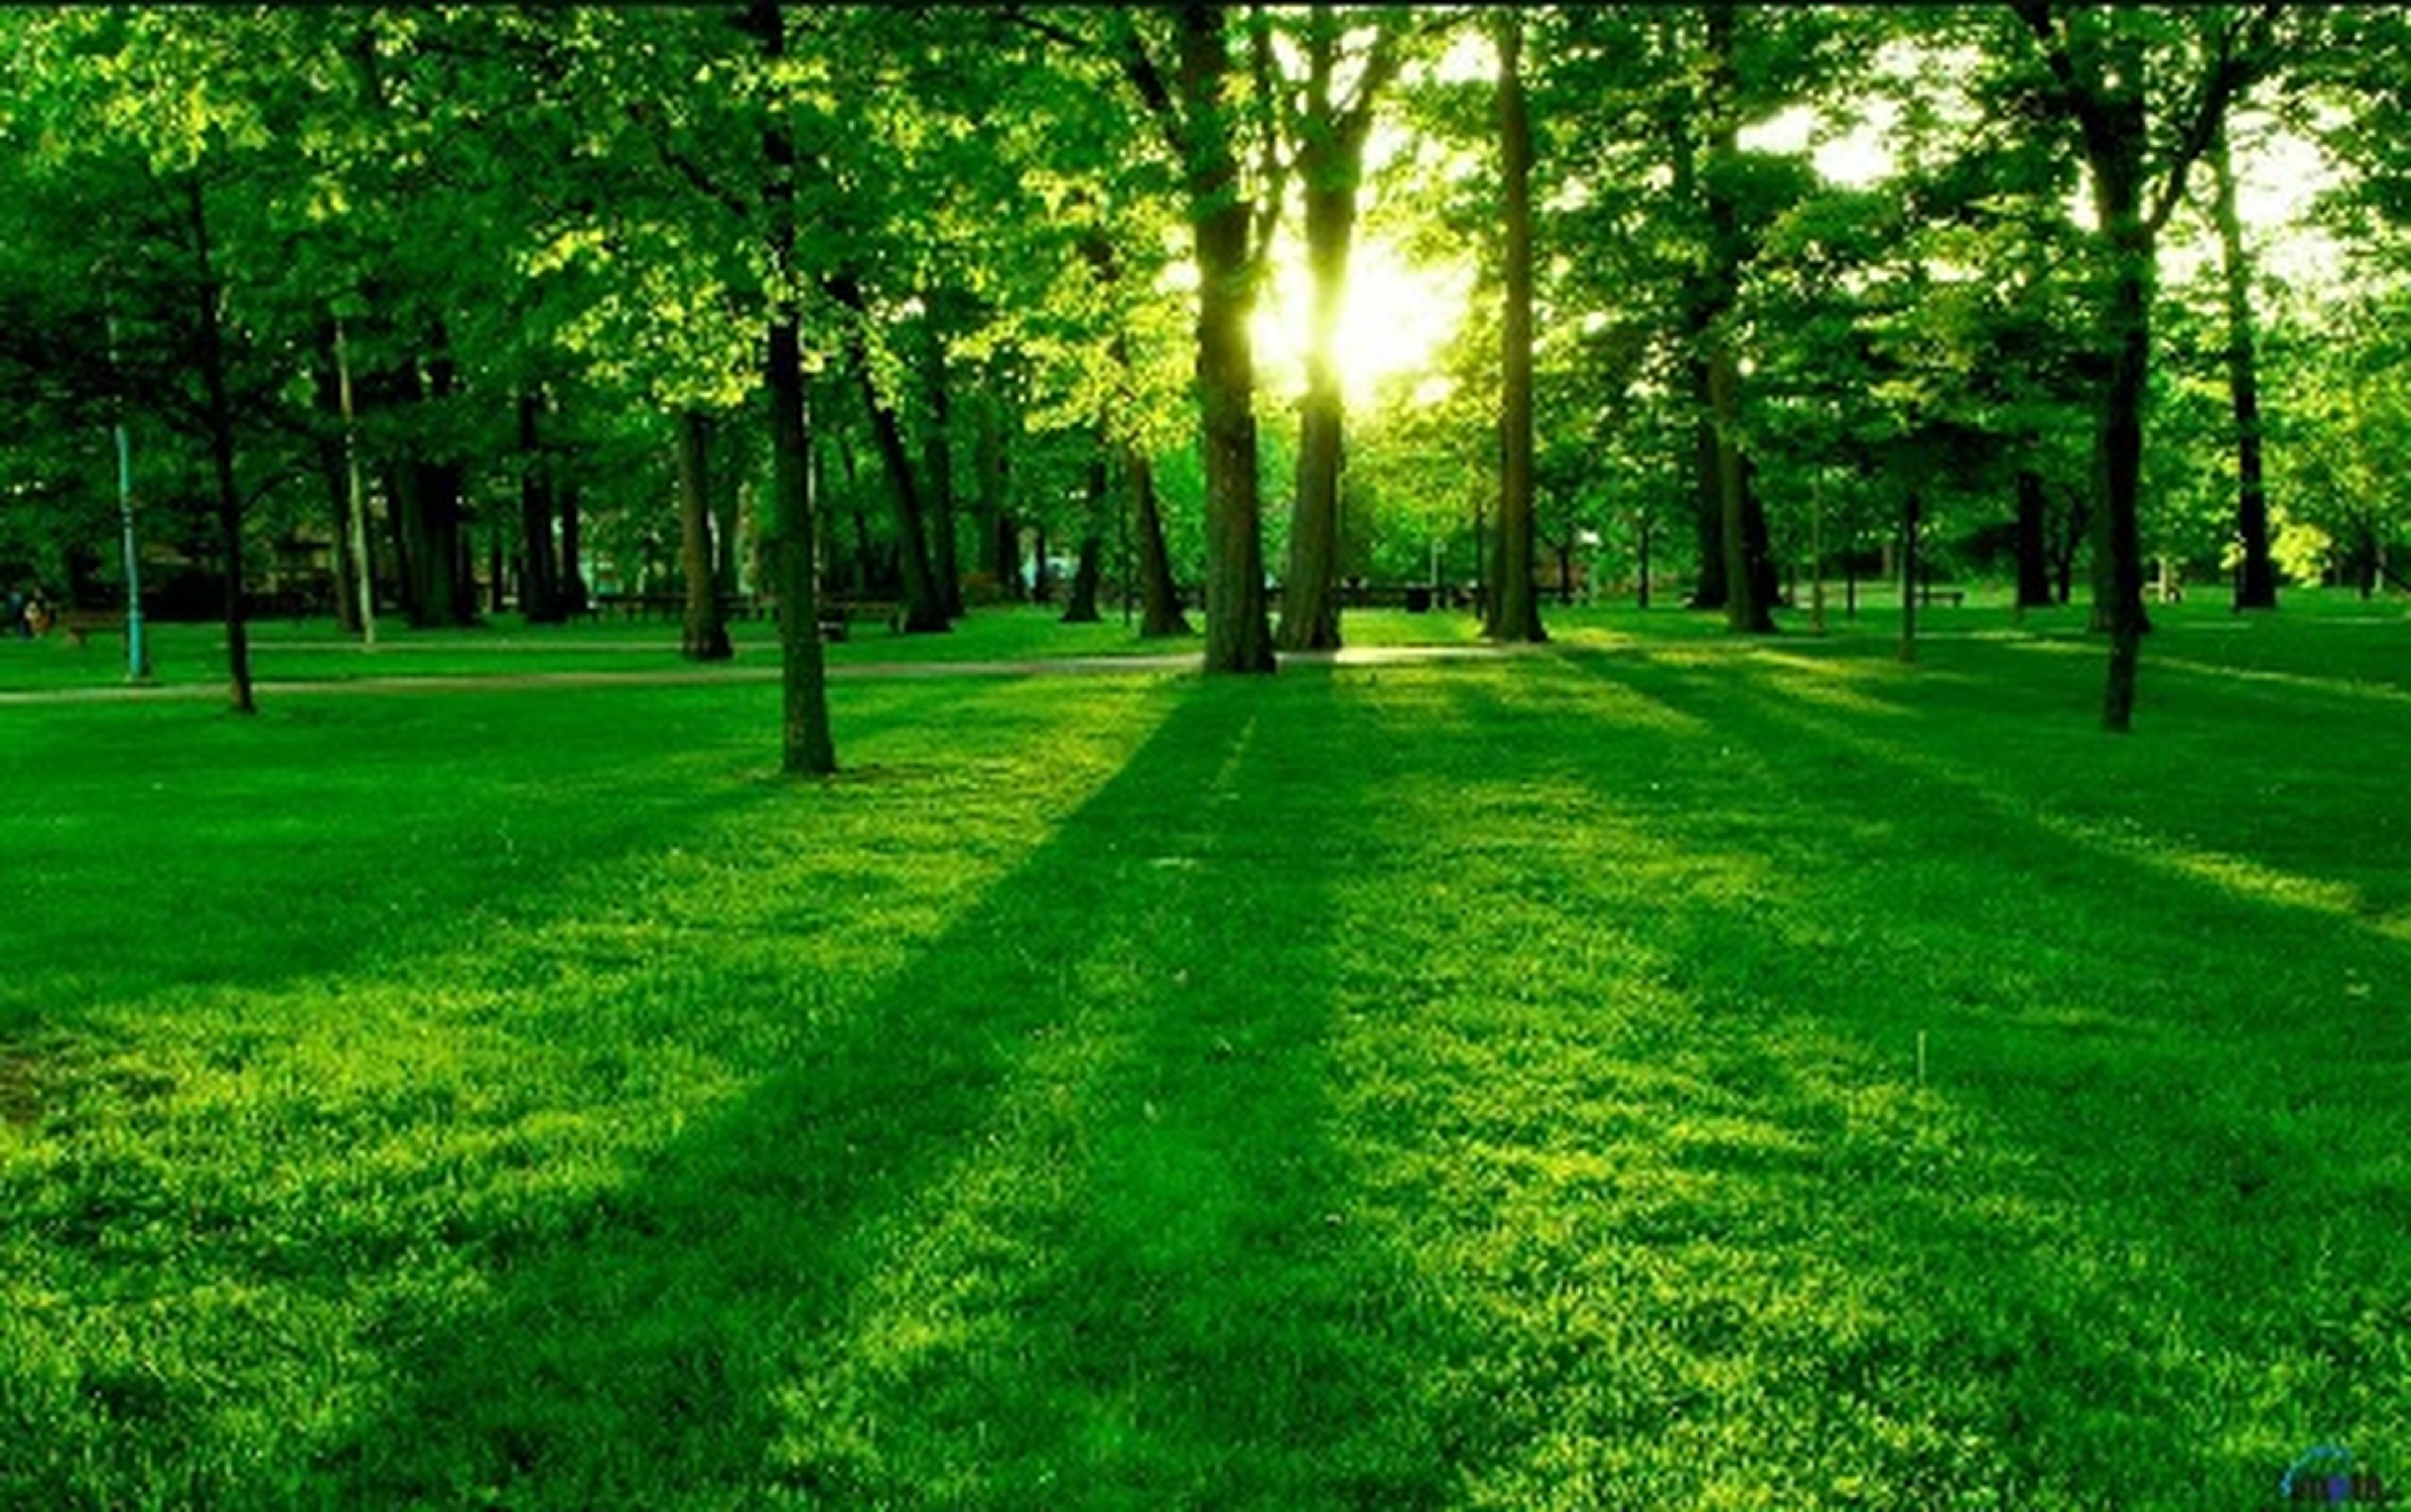 tree, grass, green color, growth, sunlight, tranquility, grassy, park - man made space, nature, tranquil scene, tree trunk, beauty in nature, shadow, field, lawn, park, scenics, landscape, day, grassland